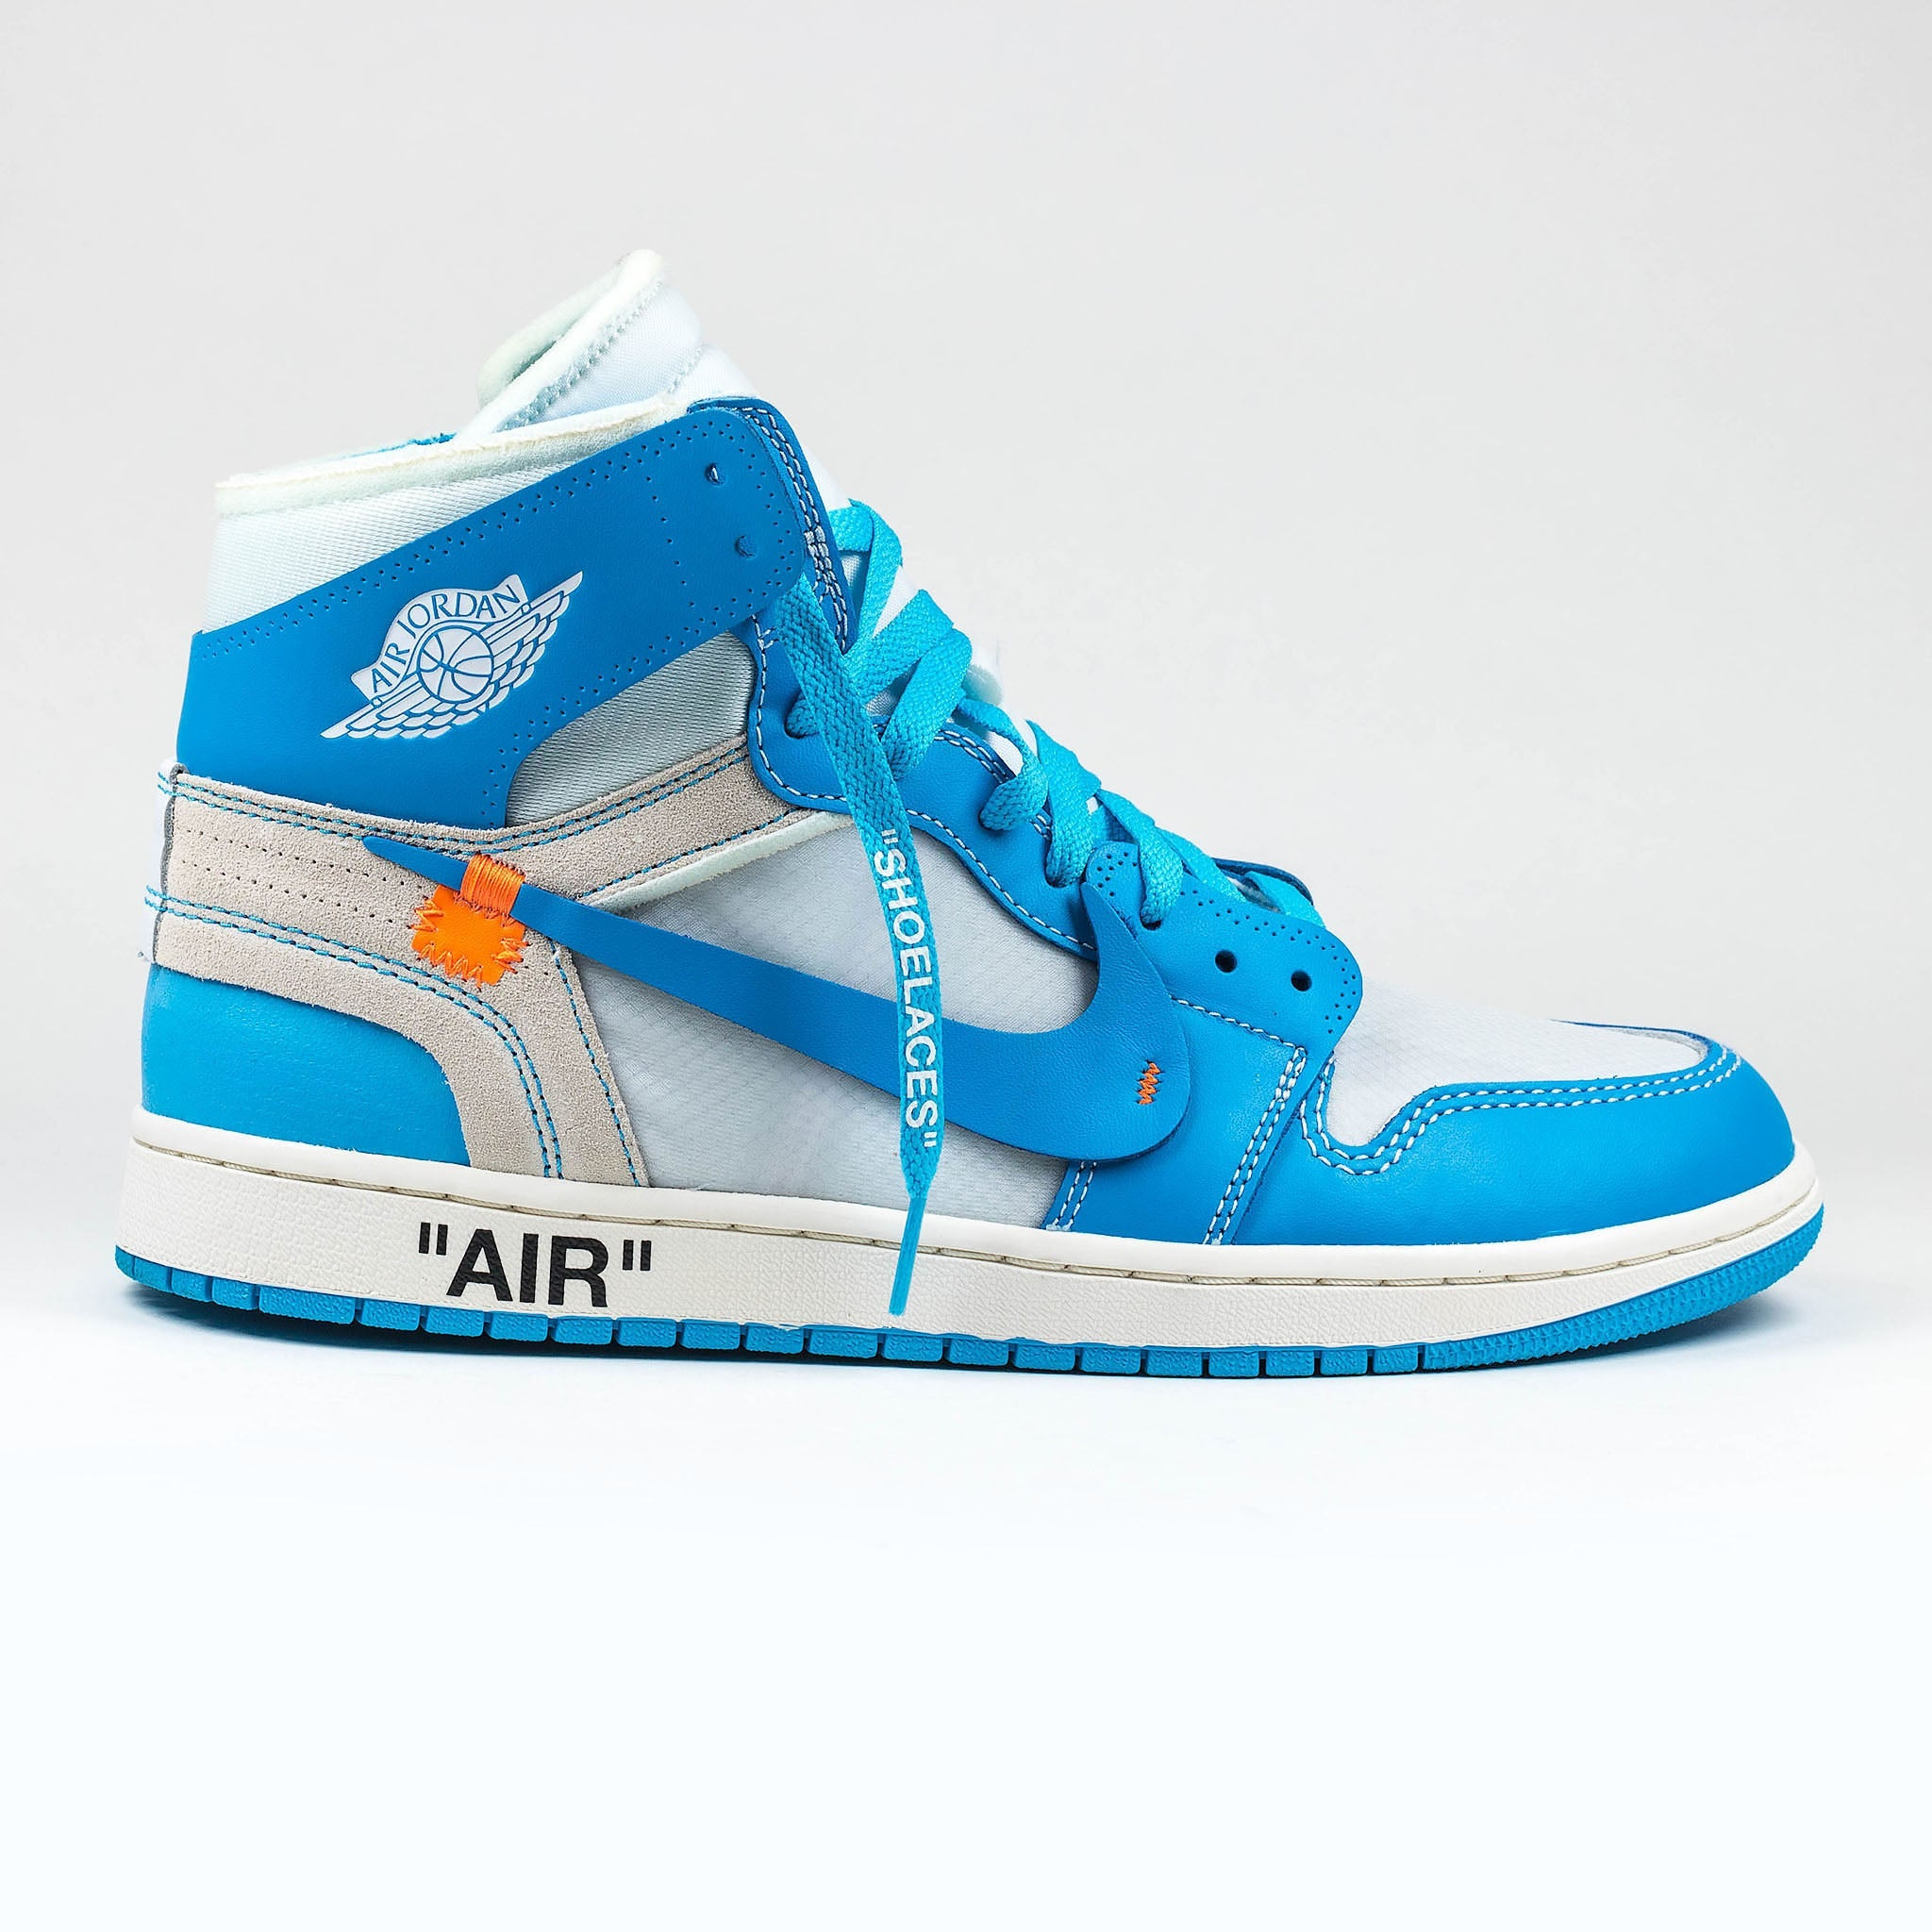 9293799c7eed97 Nike x Off White Air Jordan 1 UNC University Blue – Crepslocker